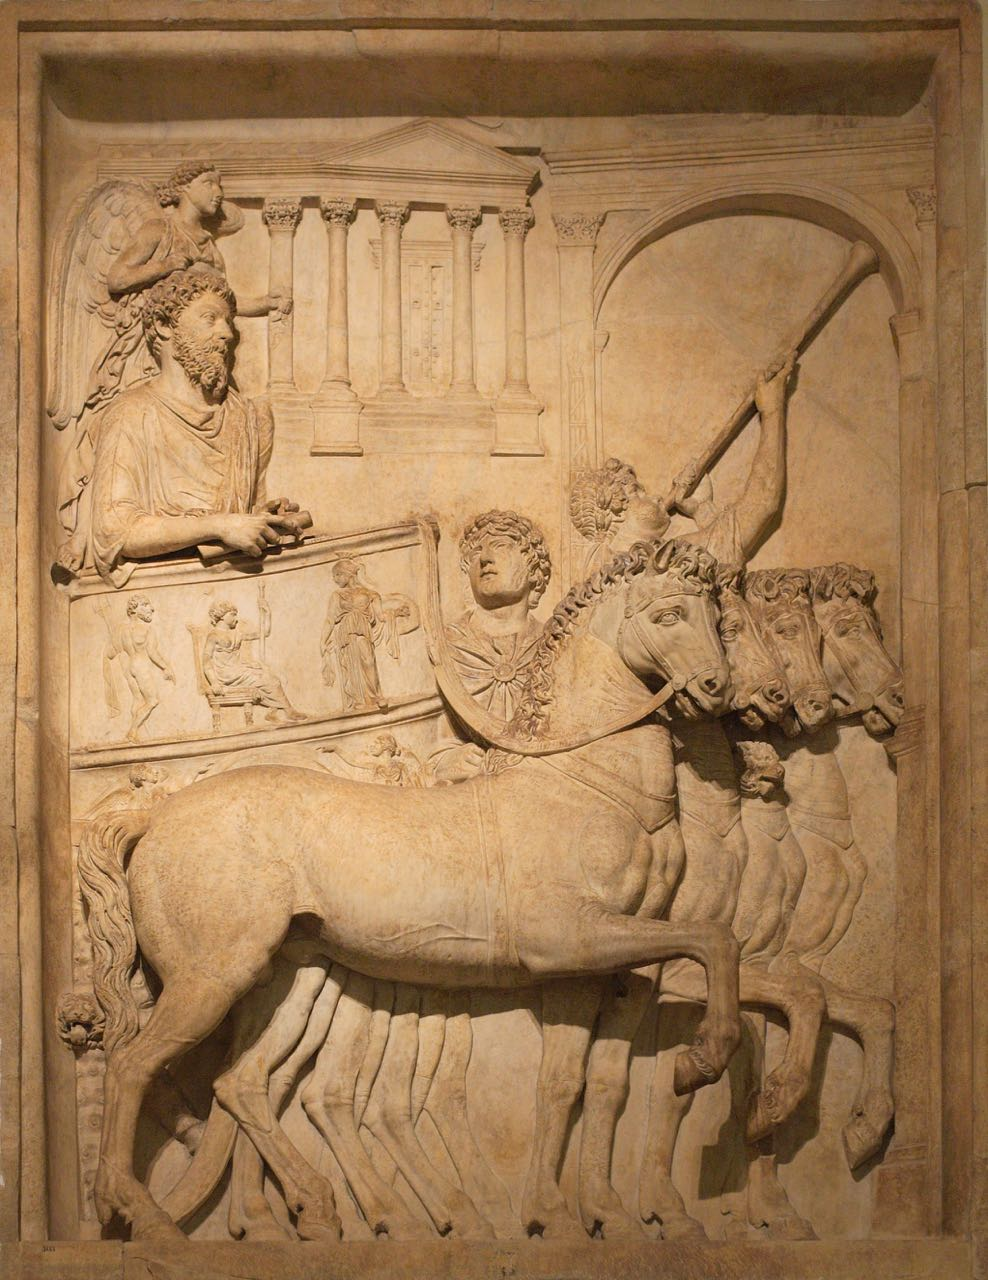 Triumph Chariot, bas relief from Arch of Marcus Aurelius in Rome, 2nd century.